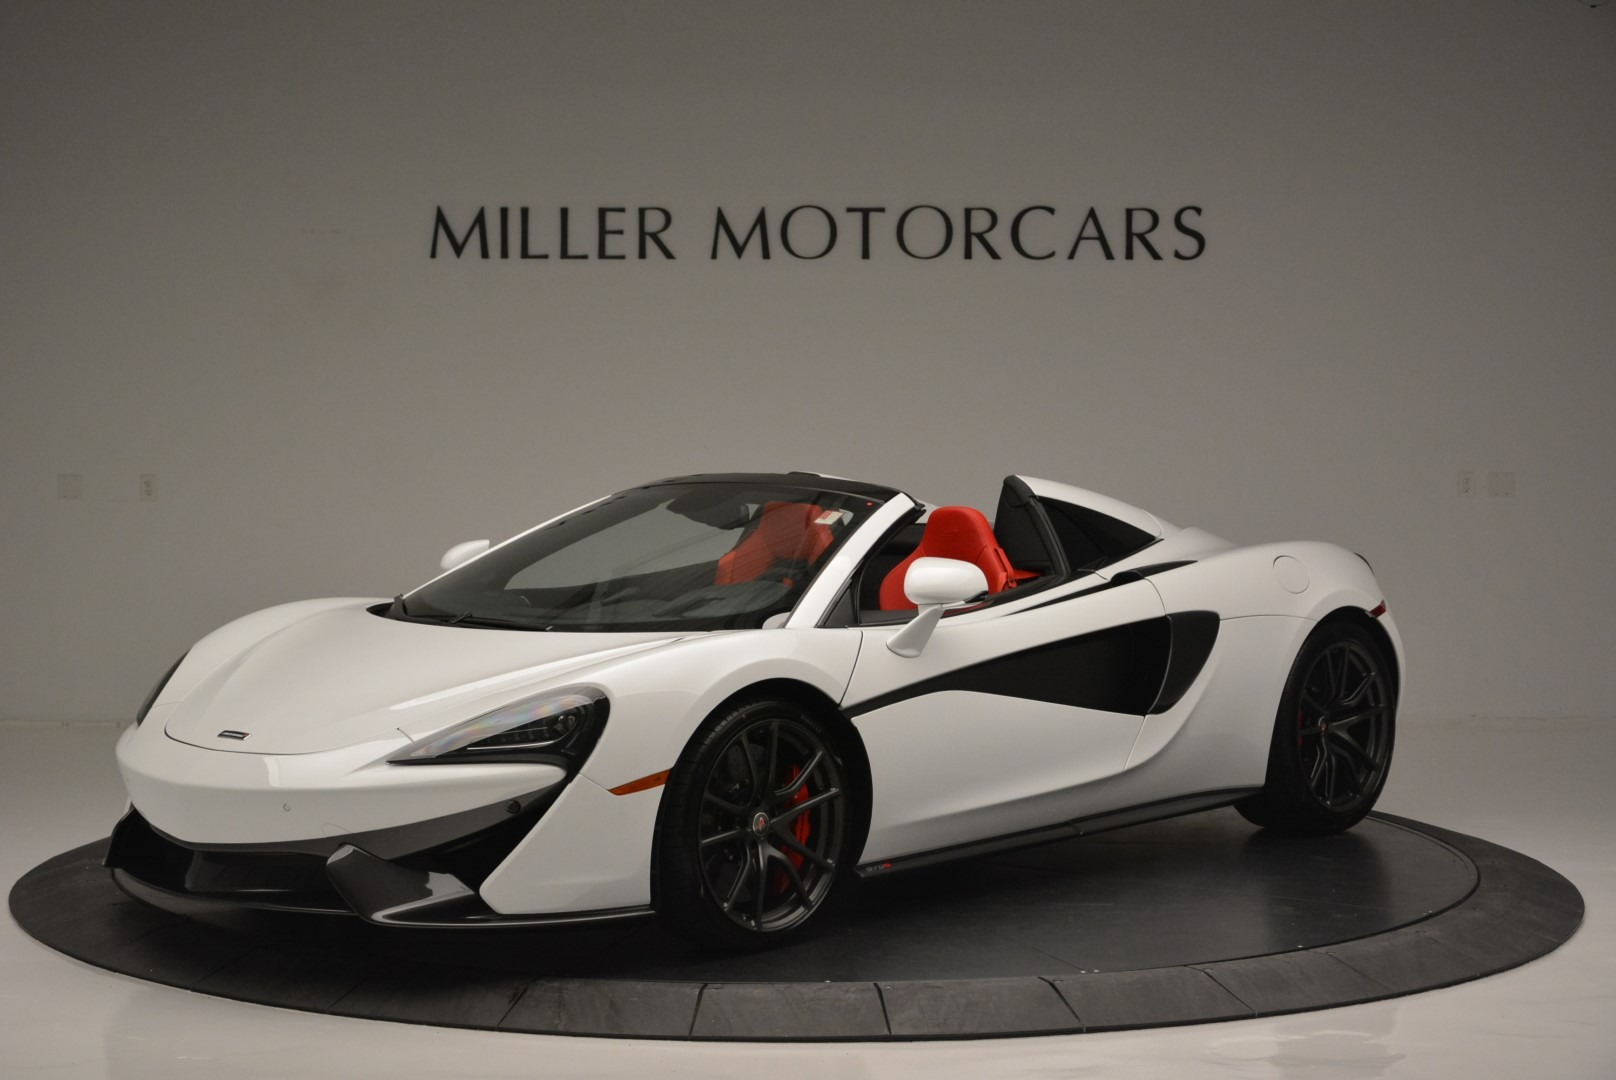 Used 2018 McLaren 570S Spider For Sale In Greenwich, CT. Alfa Romeo of Greenwich, 3149 2341_p2